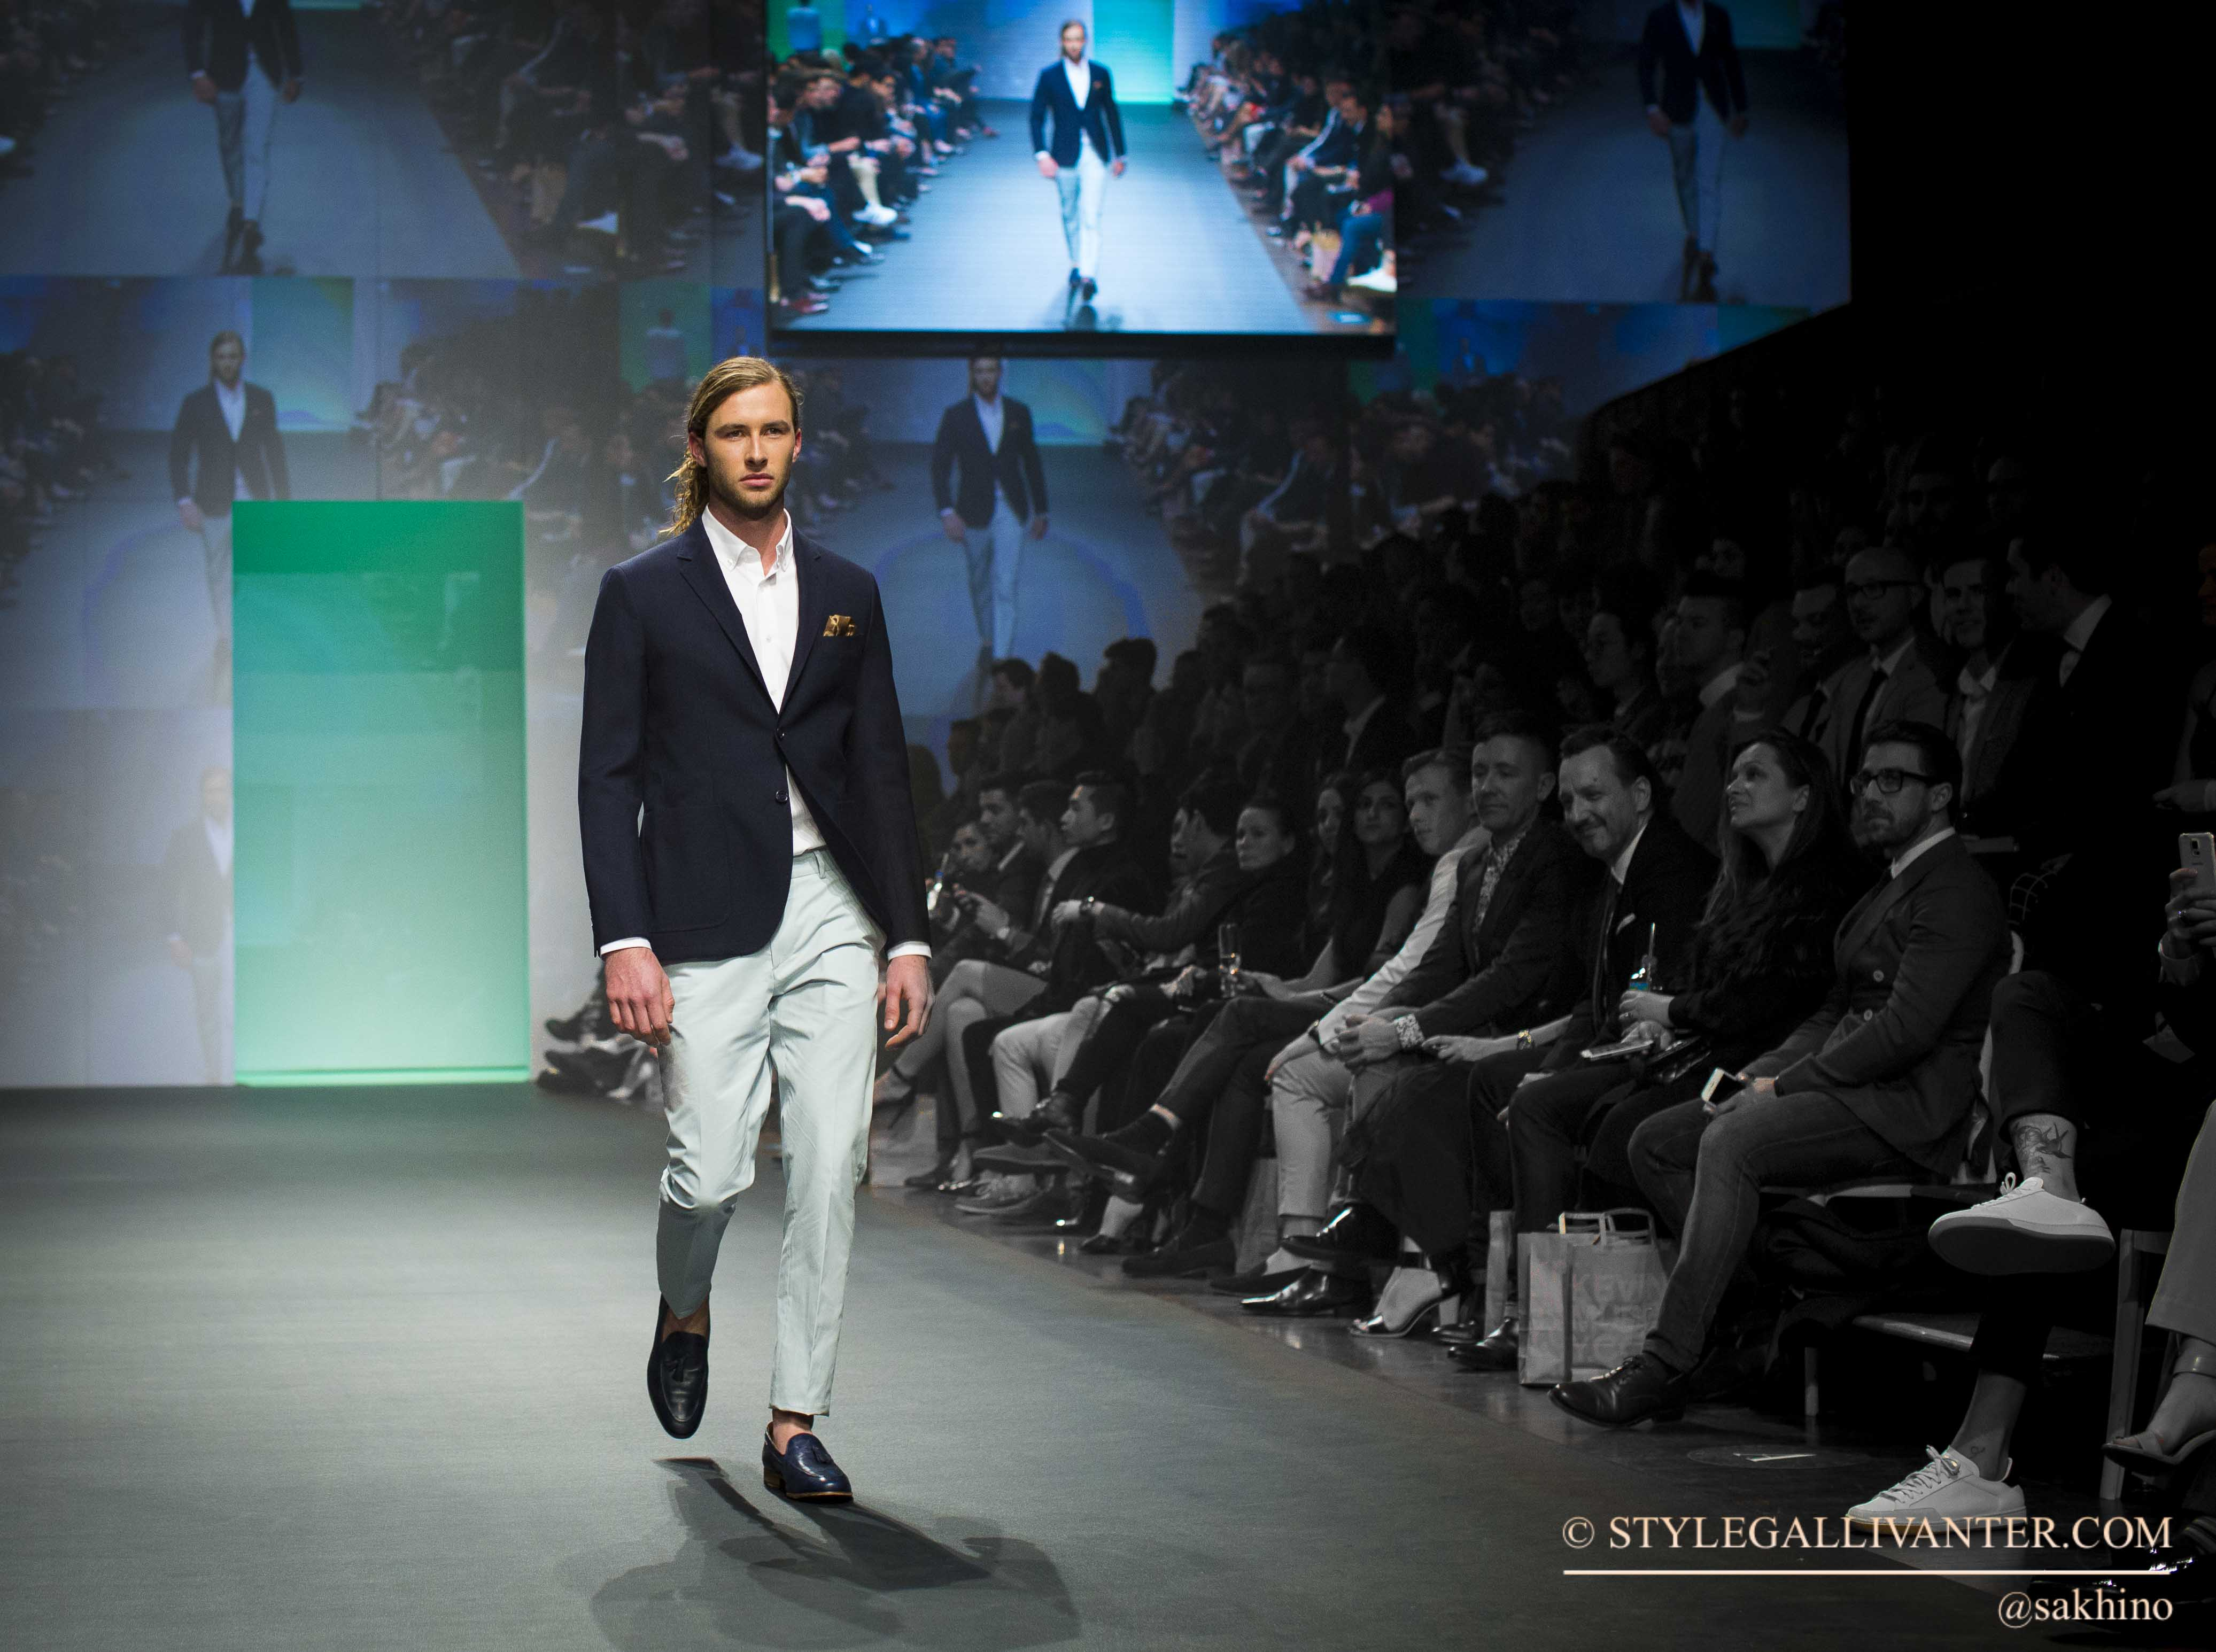 msfw15-mr-runway_msfw2015mr_msfw2015-mr-runway_msfw-fashion-influencers-8